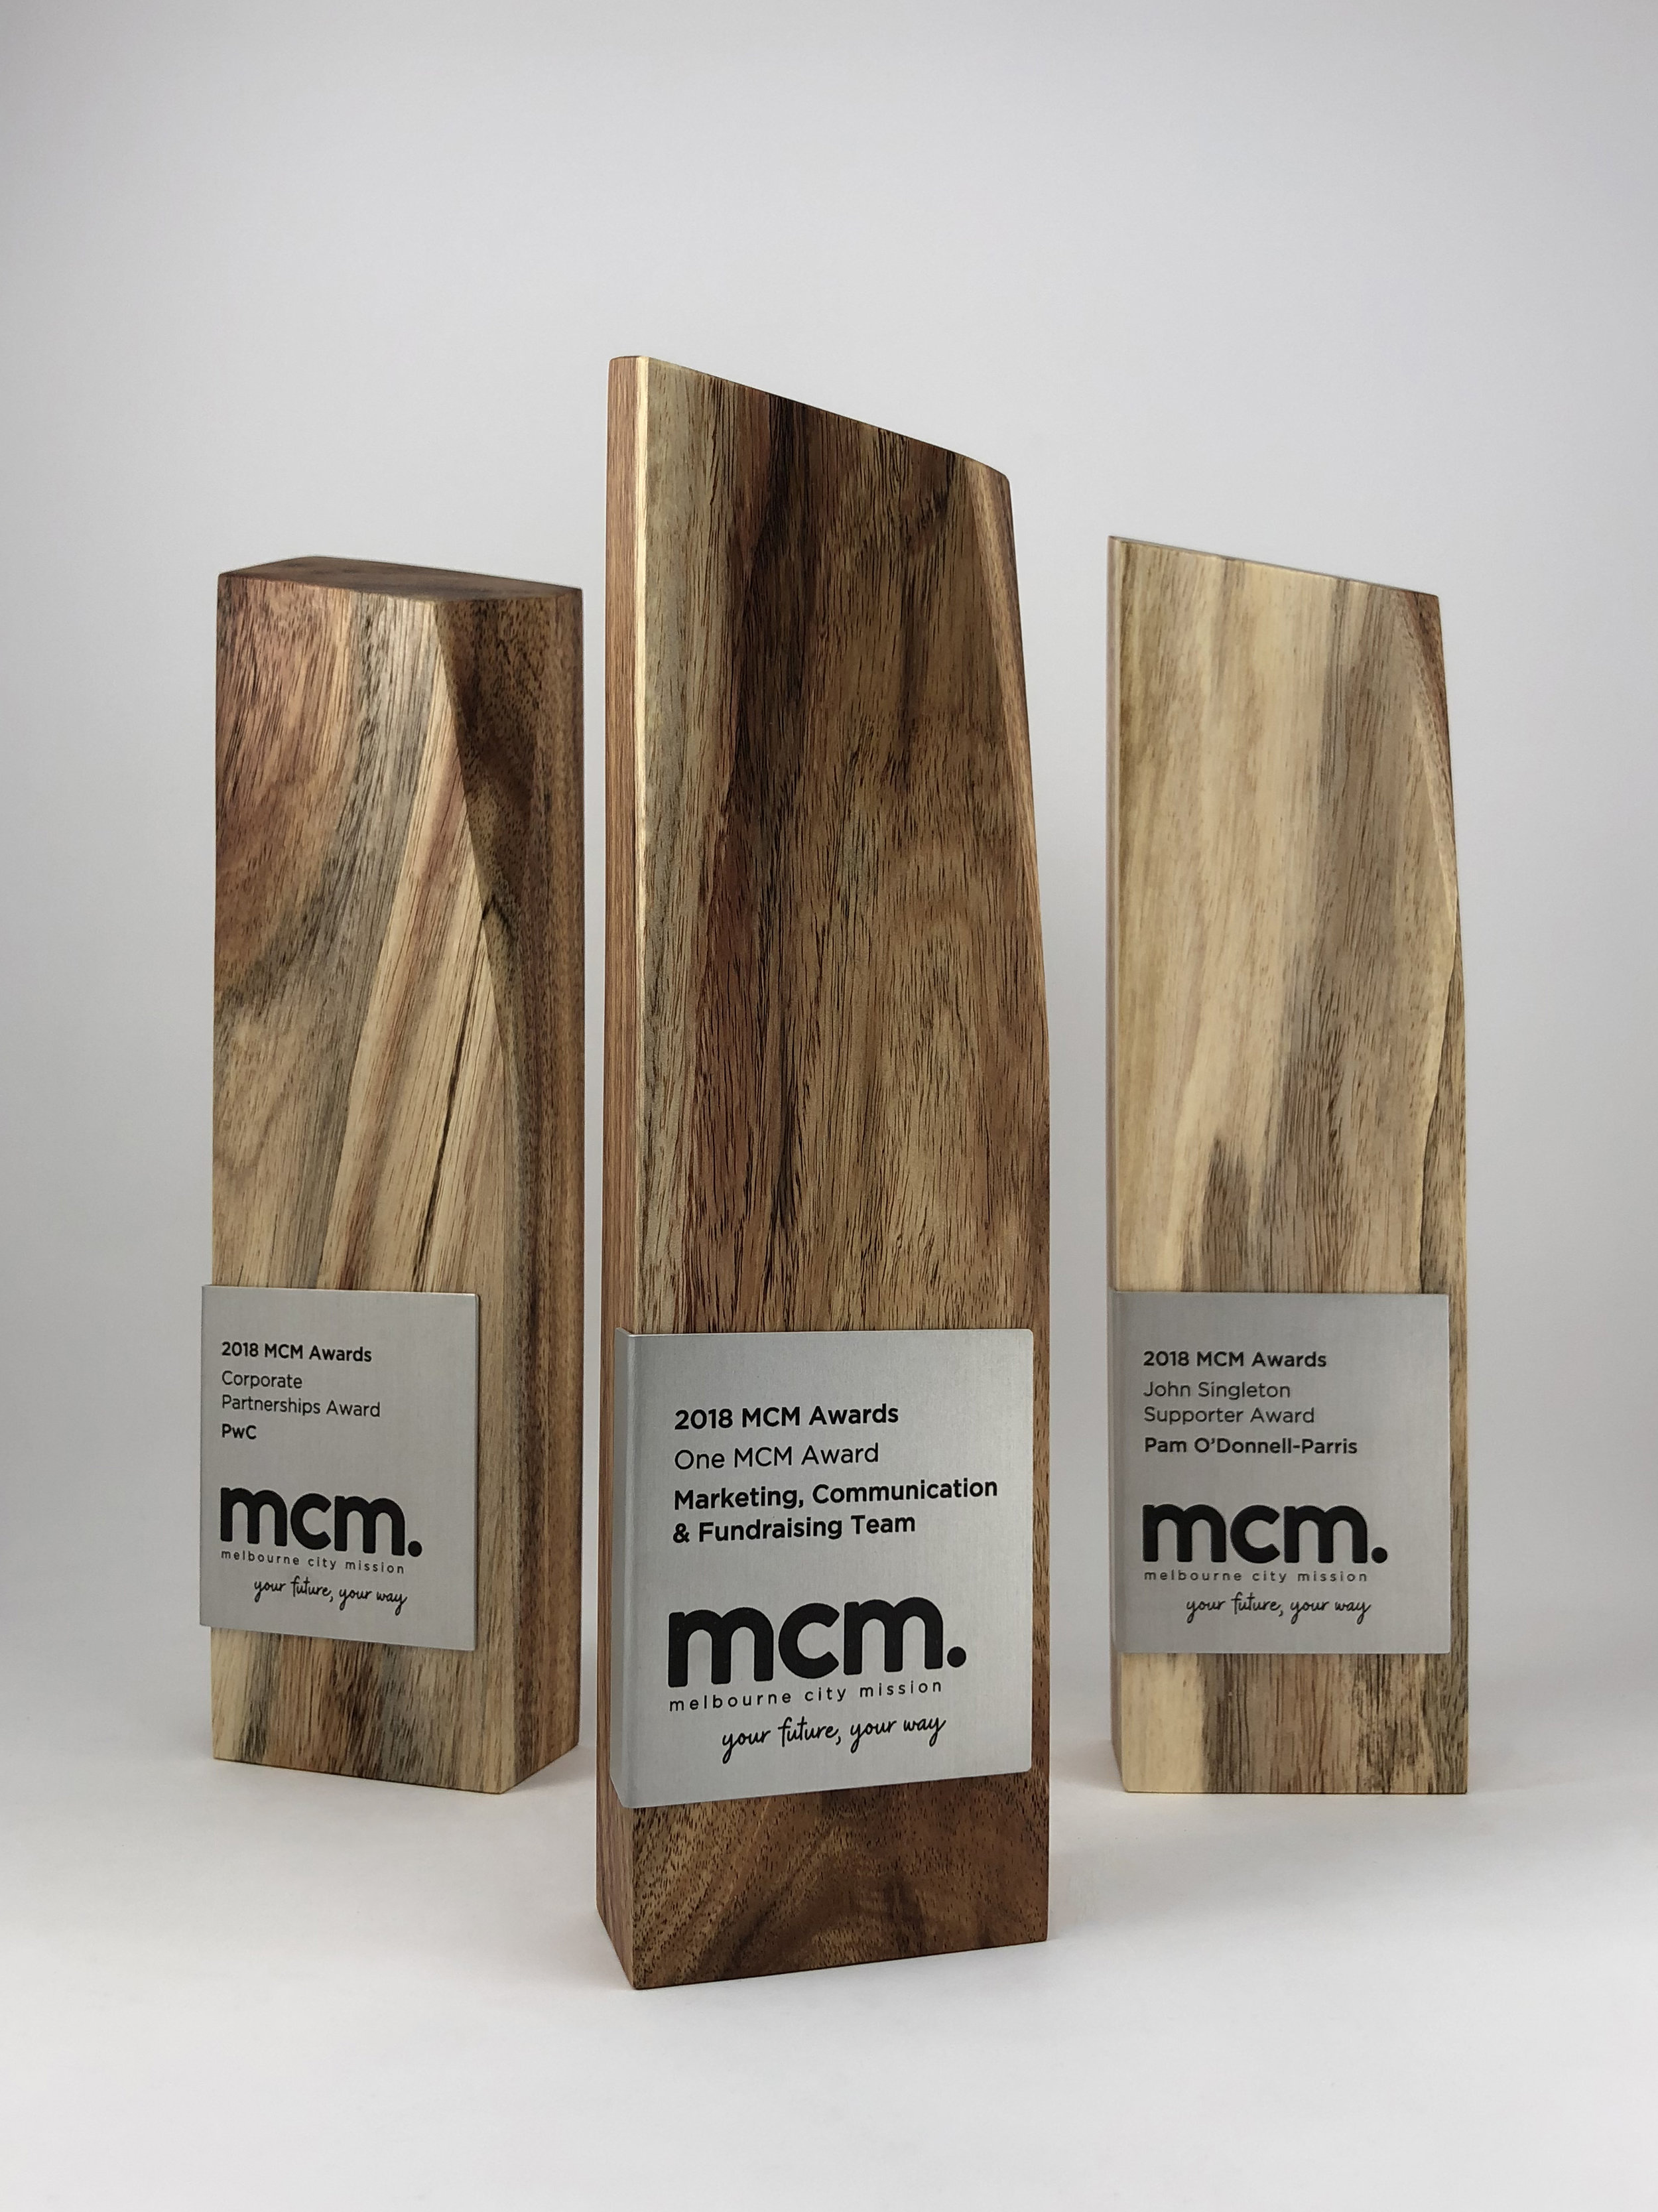 mcm-awards-reclaimed-eco-timber-chamfer-metal-trophy-01.jpg